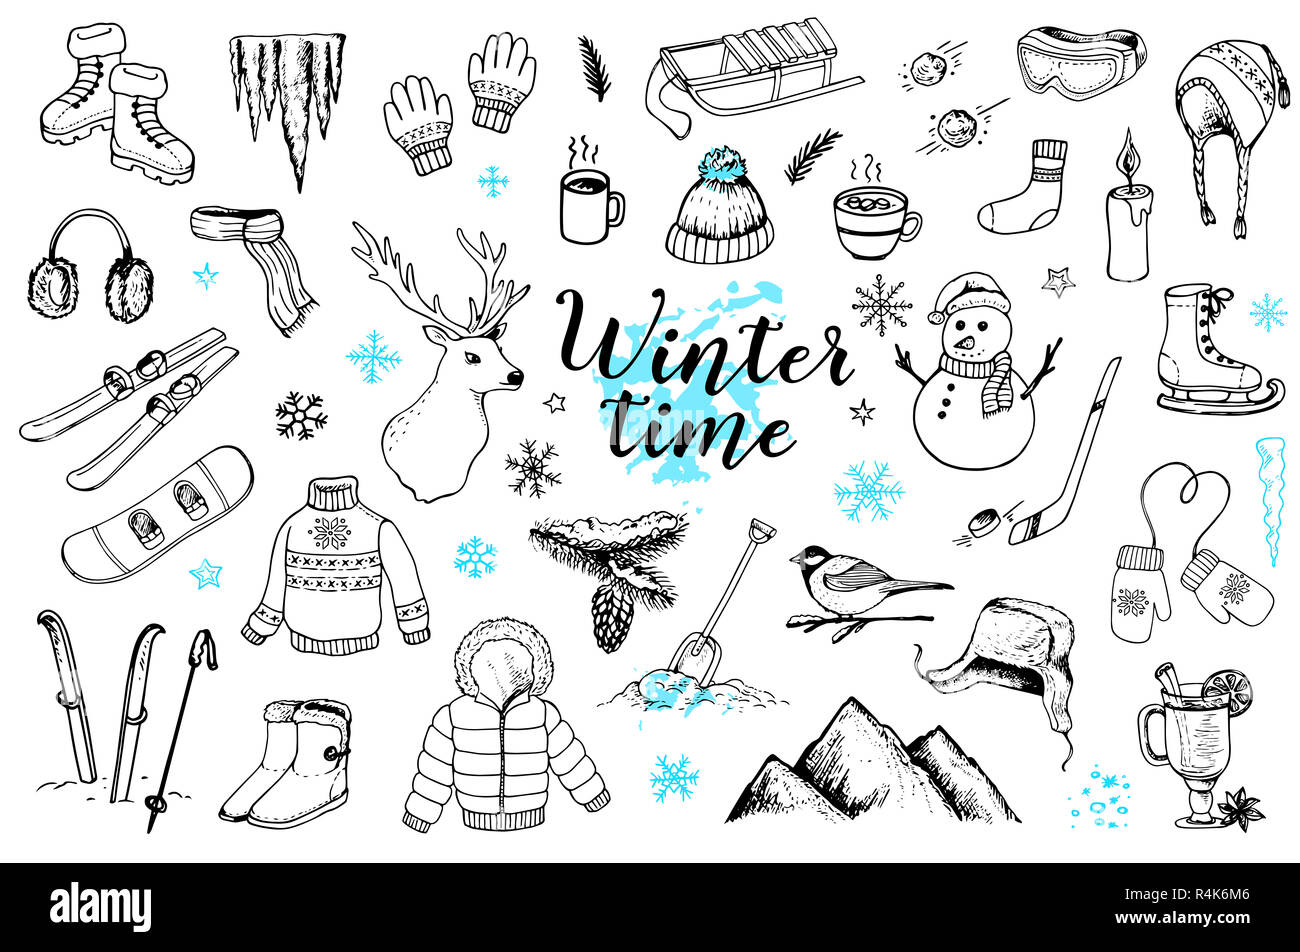 a961f99b Set of hand drawn winter doodles on a white background. Clothing, sports  equipment and nature design elements.